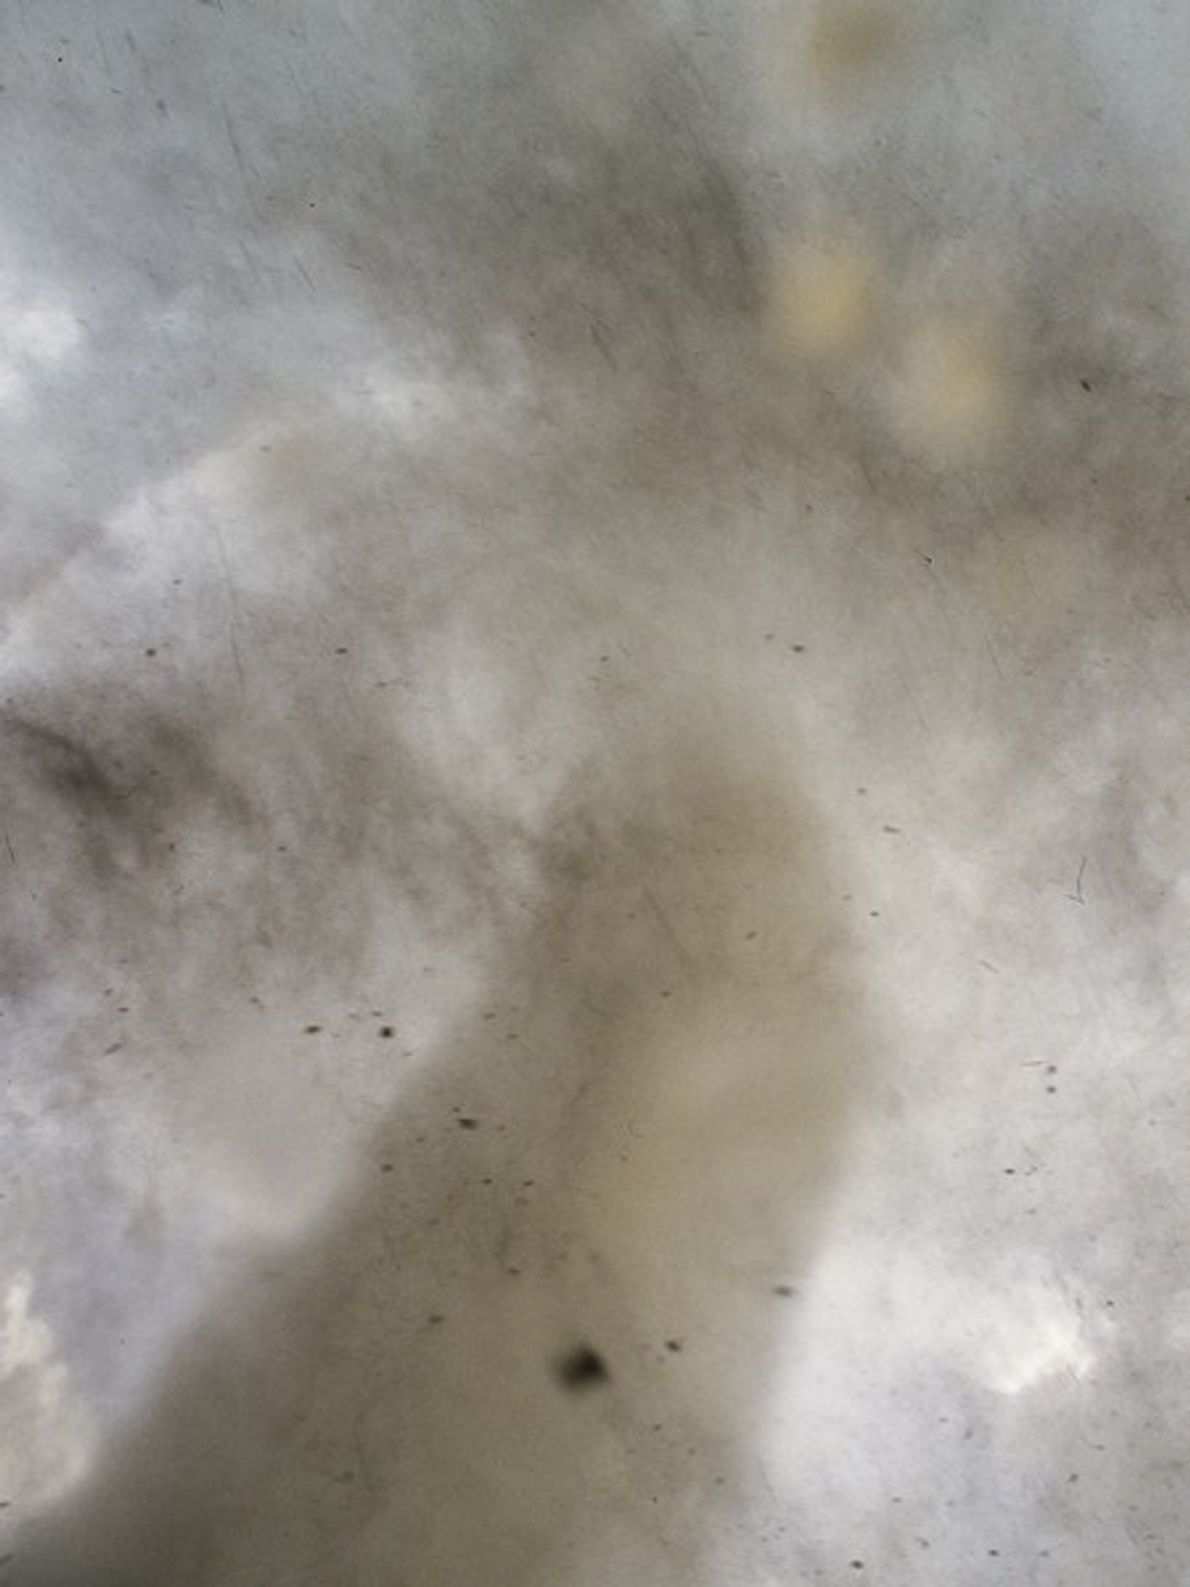 A photographer caught this extreme close-up of a tornado funnel in Manchester, South Dakota. The combination ...